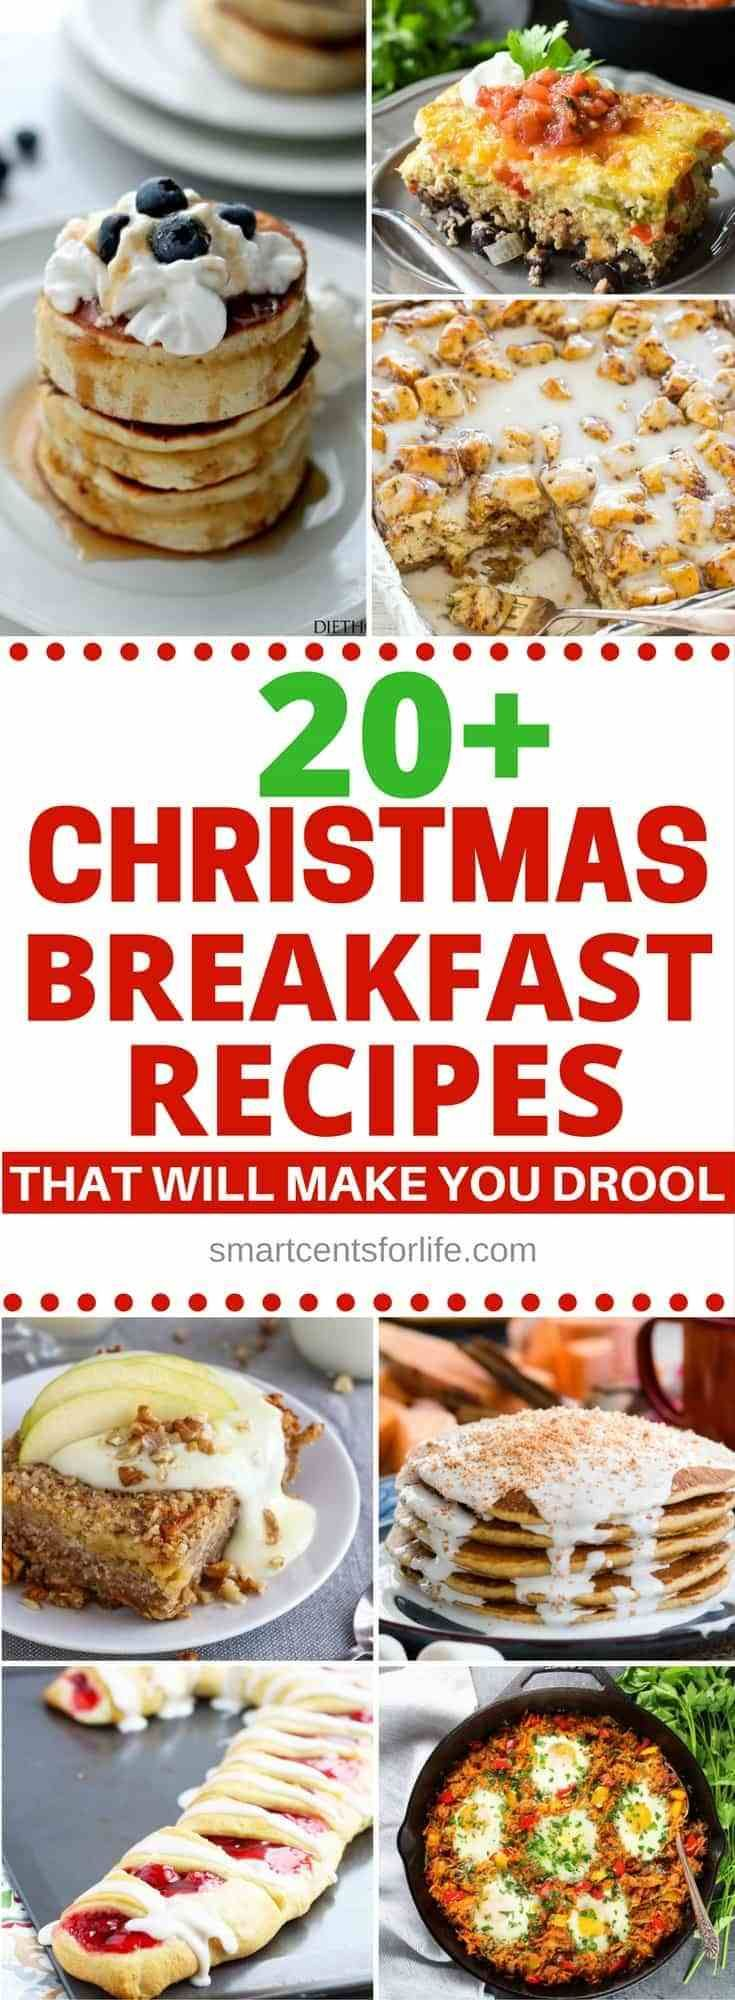 20 Amazing Christmas Breakfast And Brunch Recipes Christmas Breakfast Brunch Recipes Breakfast Recipes Kids